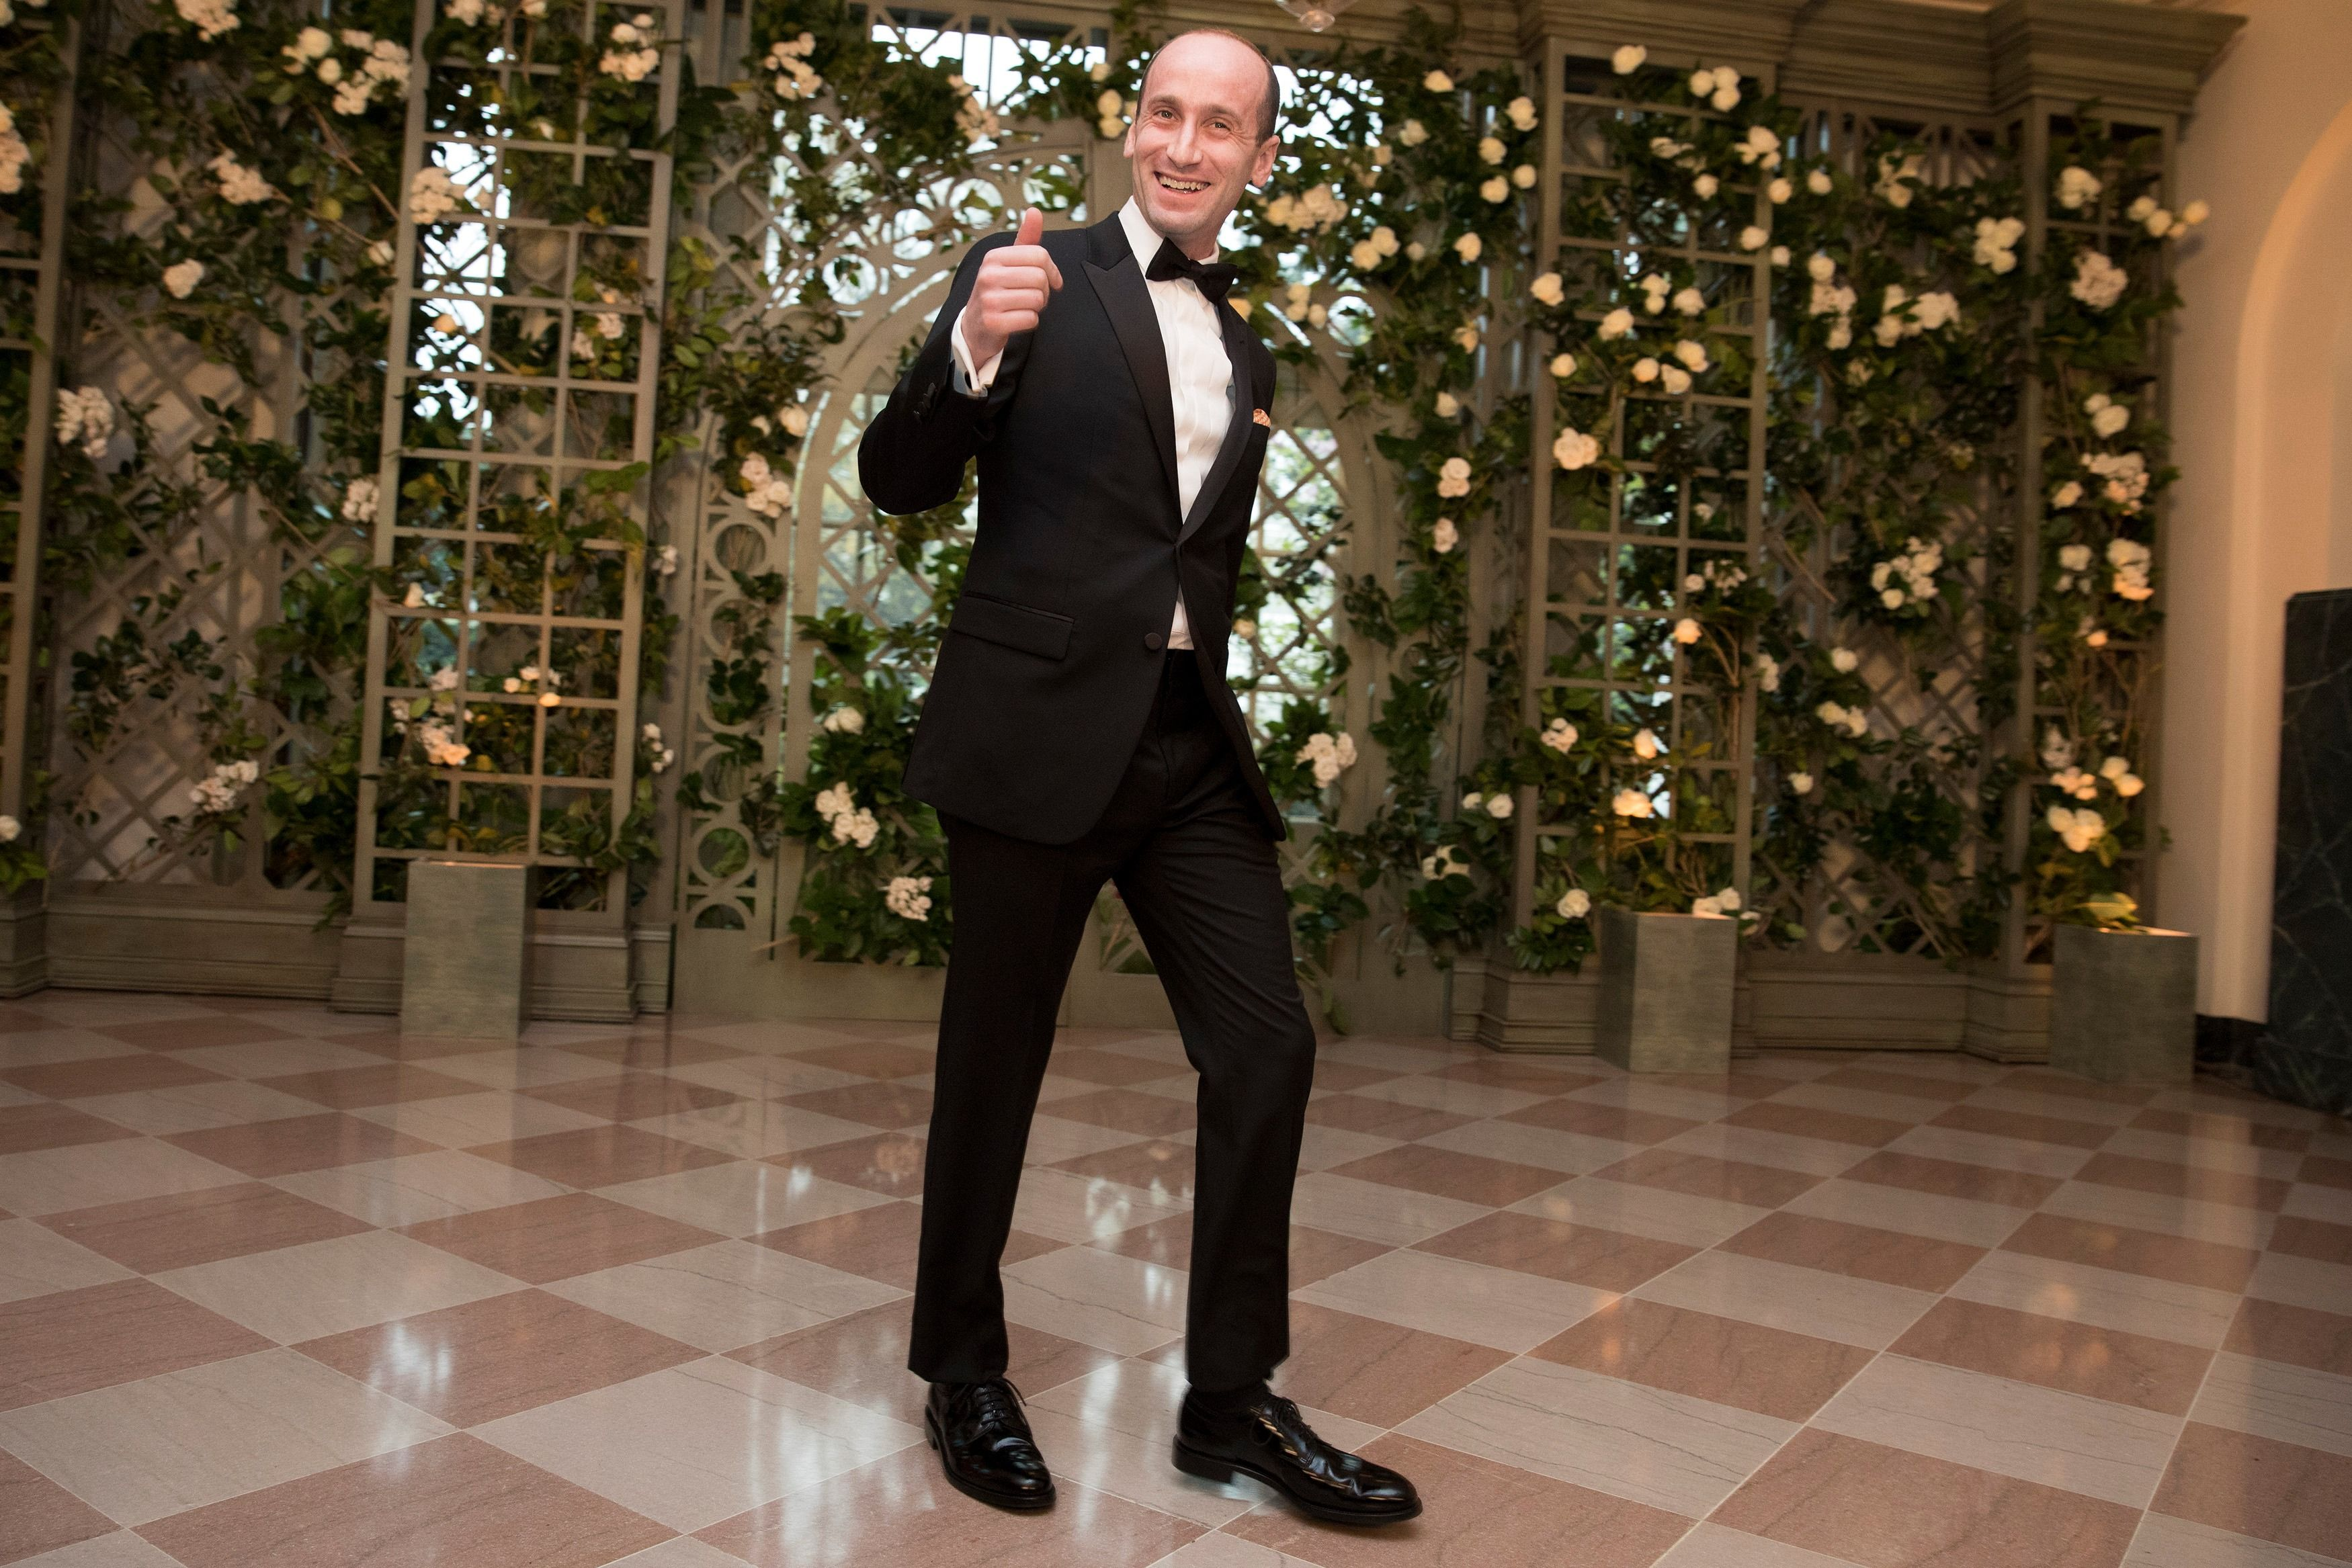 Editorial   Jews Should Disown Stephen Miller, The Architect Of Trump's Family Separation Disgrace